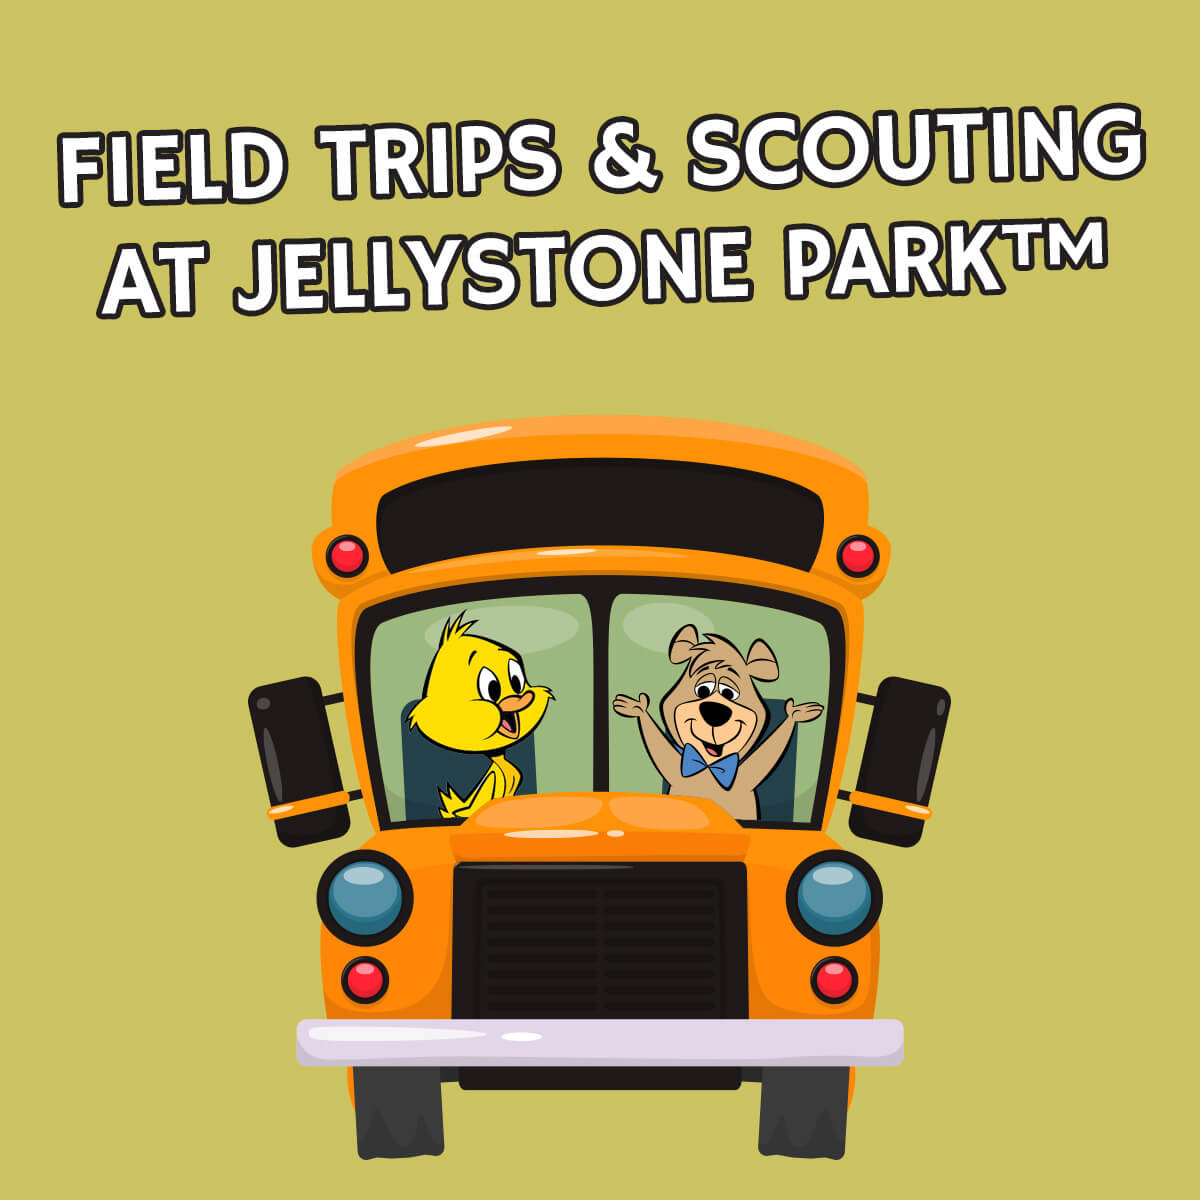 Field trips and scouting at Jellystone Park in Robert, LA